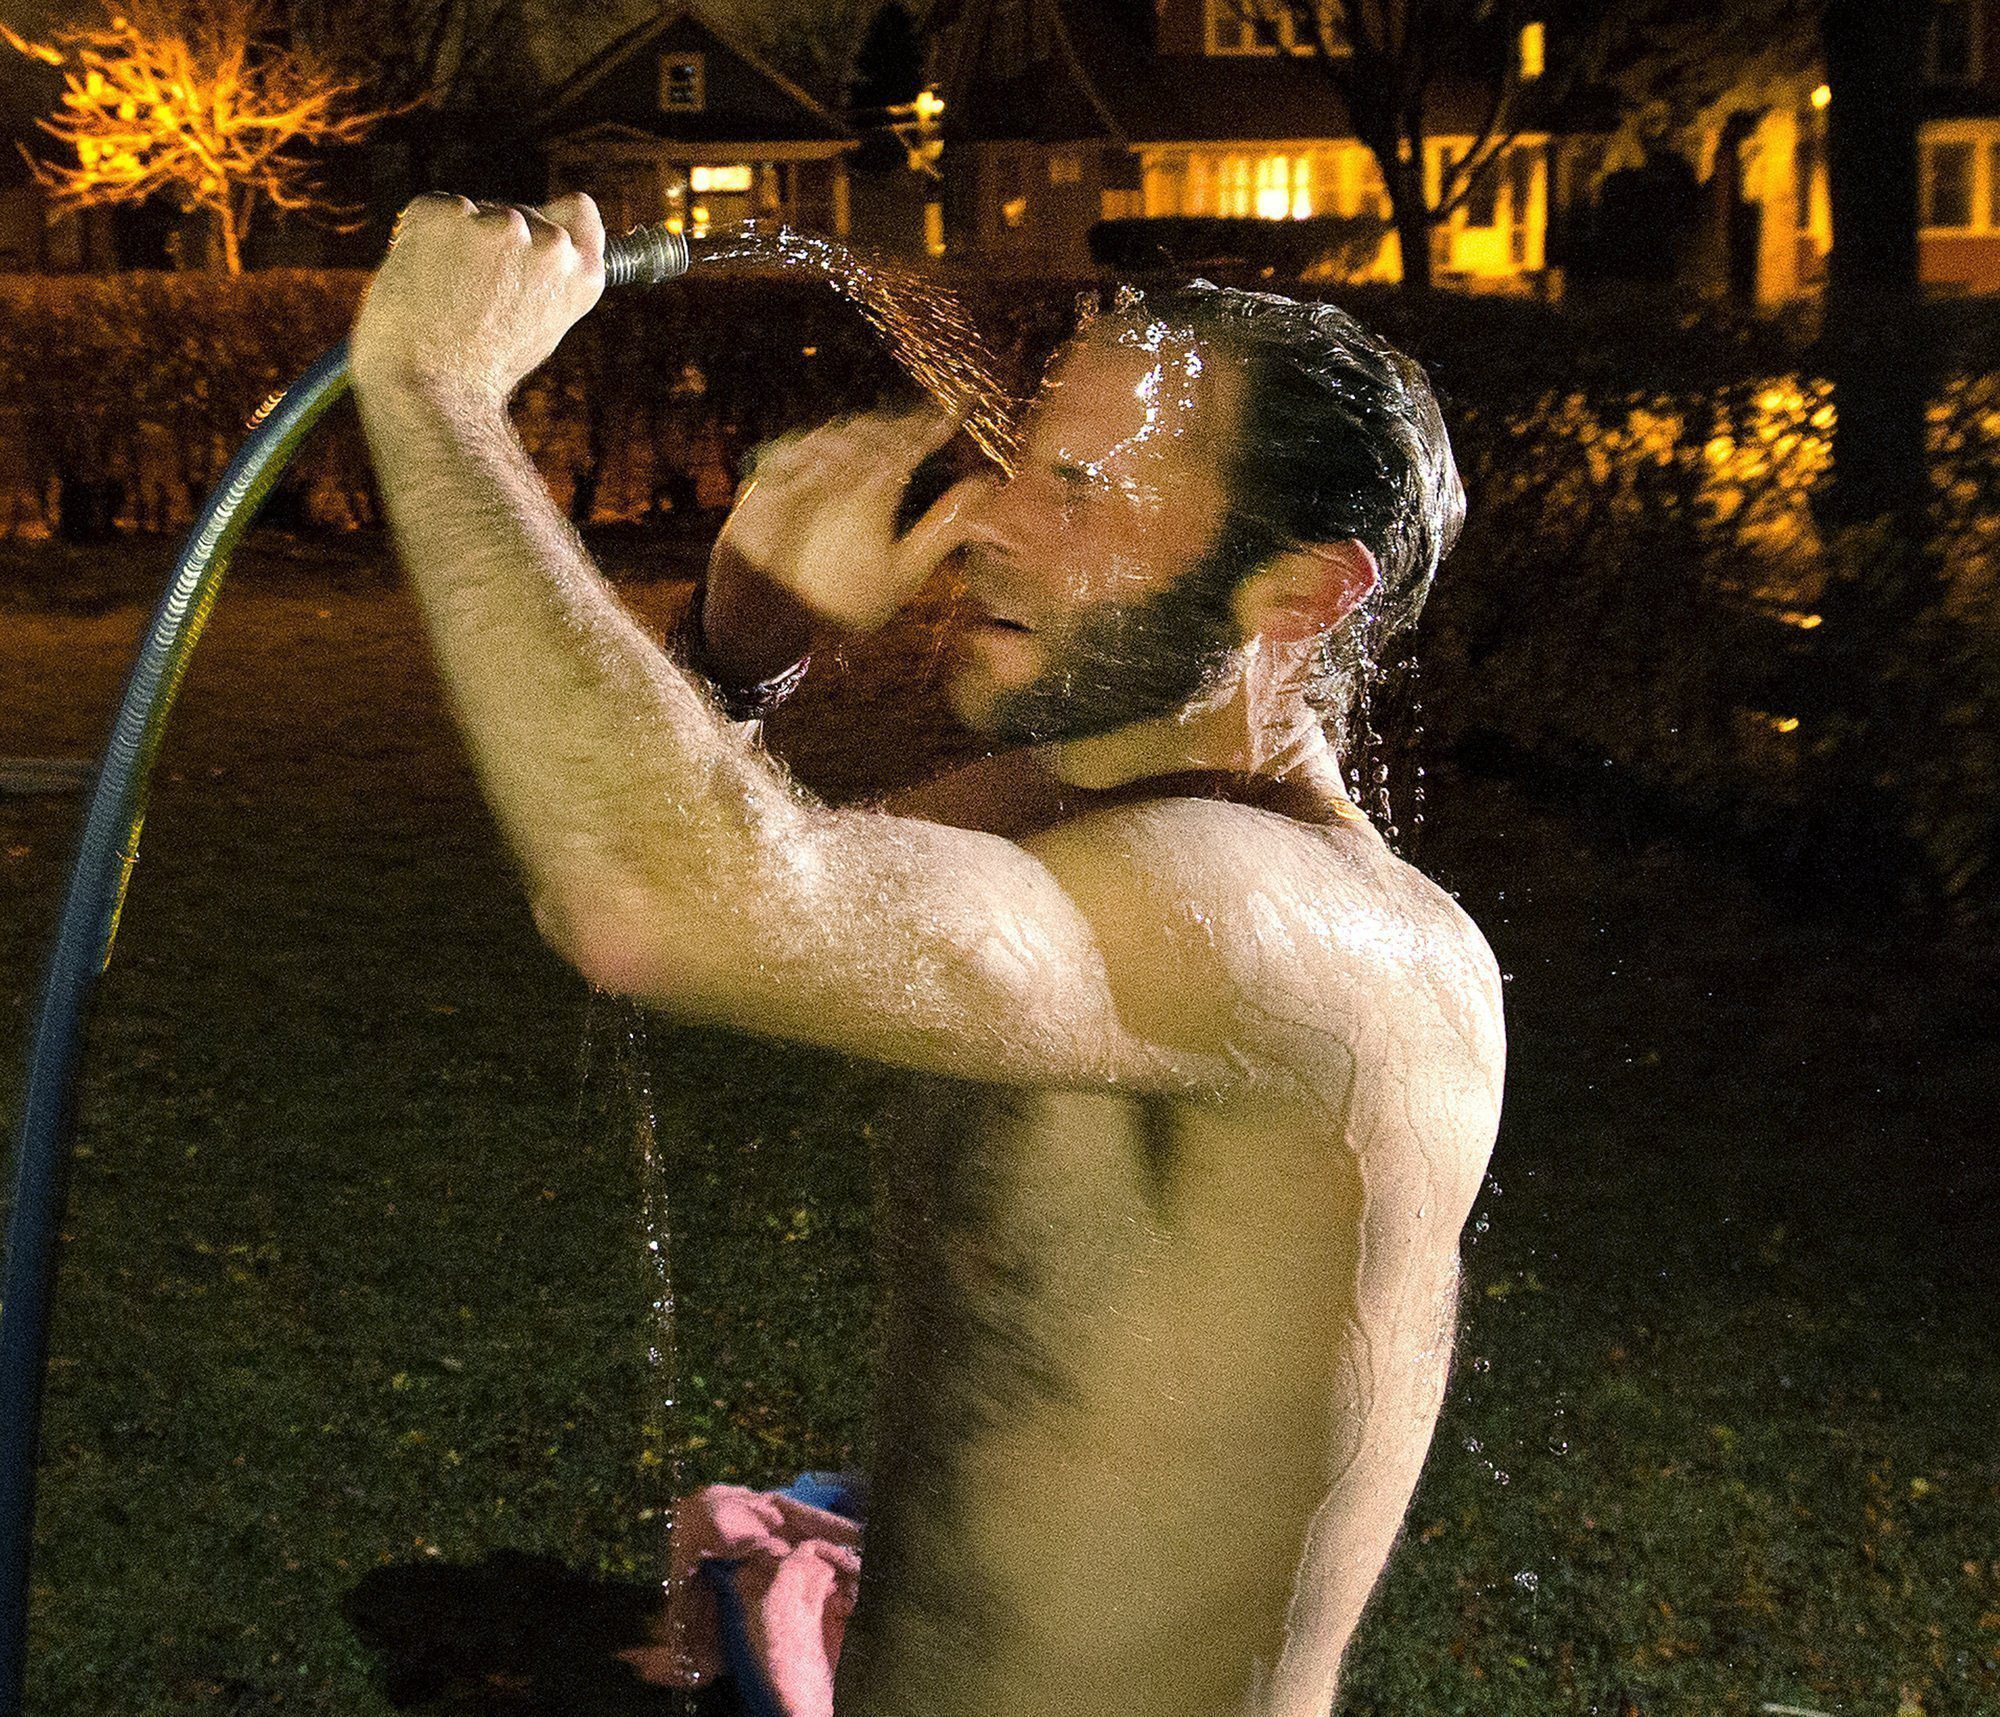 Pederson cooled down with a garden hose. A shower really isn't needed, enthusiasts say, as the sauna is the shower.